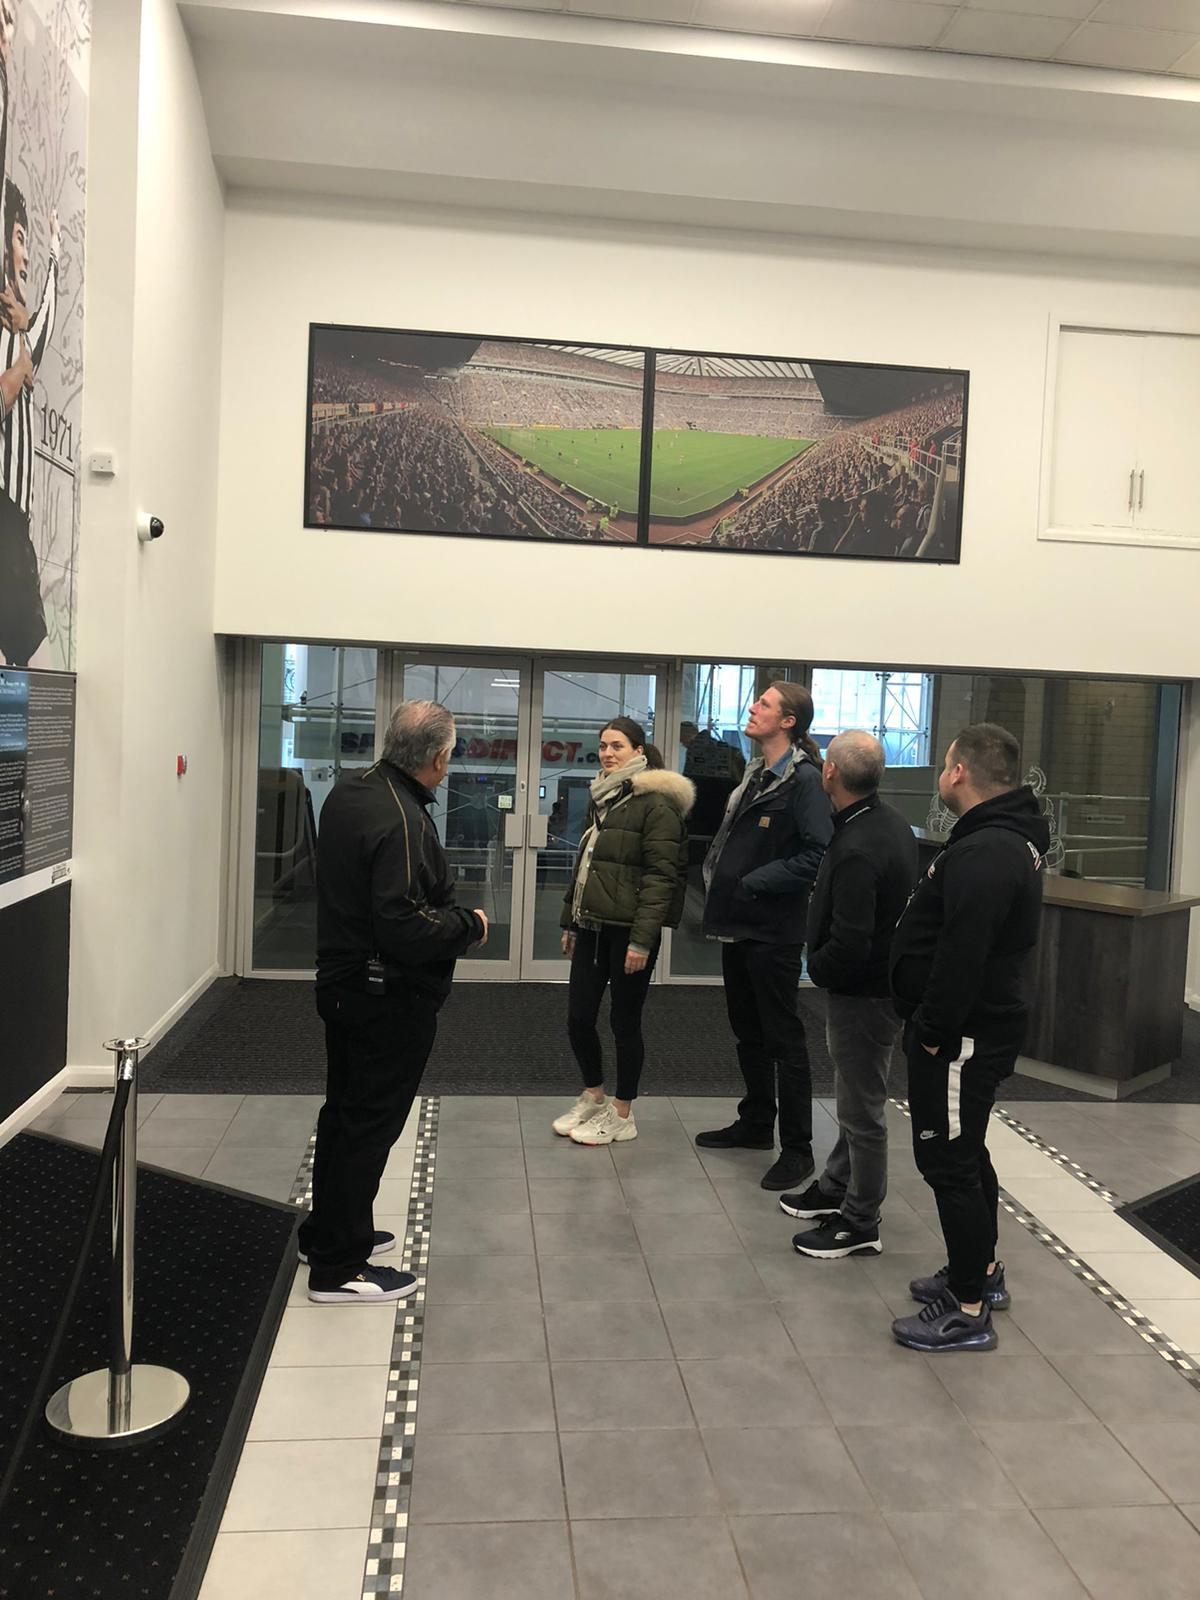 StormGain clients visit to NUFC stadium